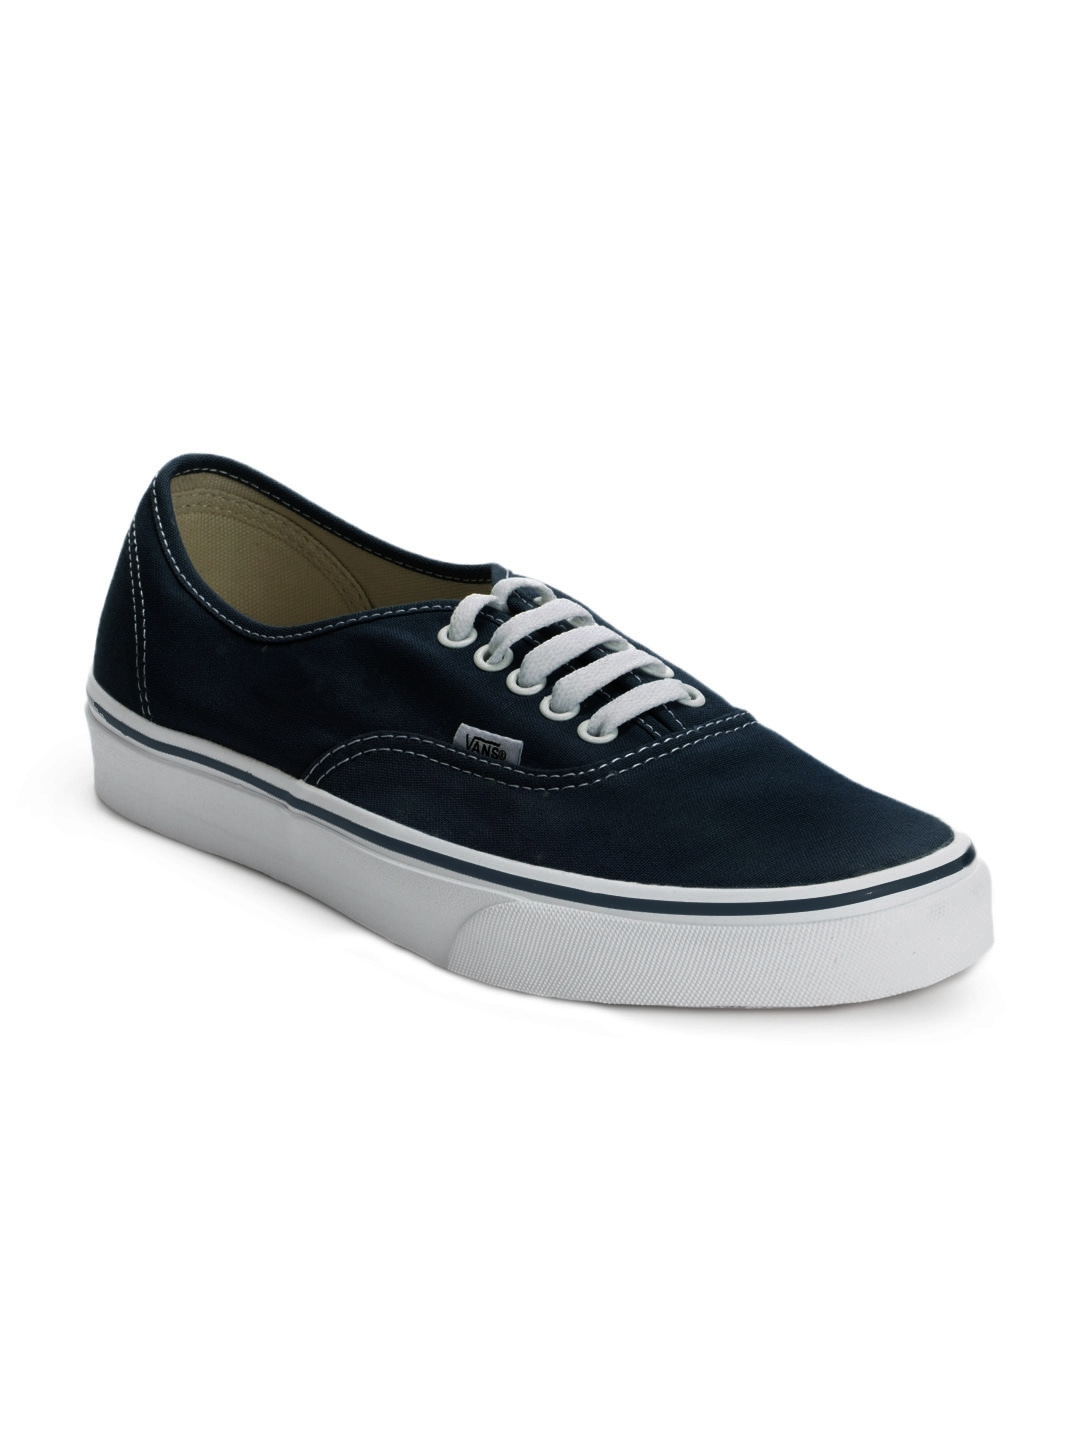 buy vans navy blue casual shoes 288 footwear for